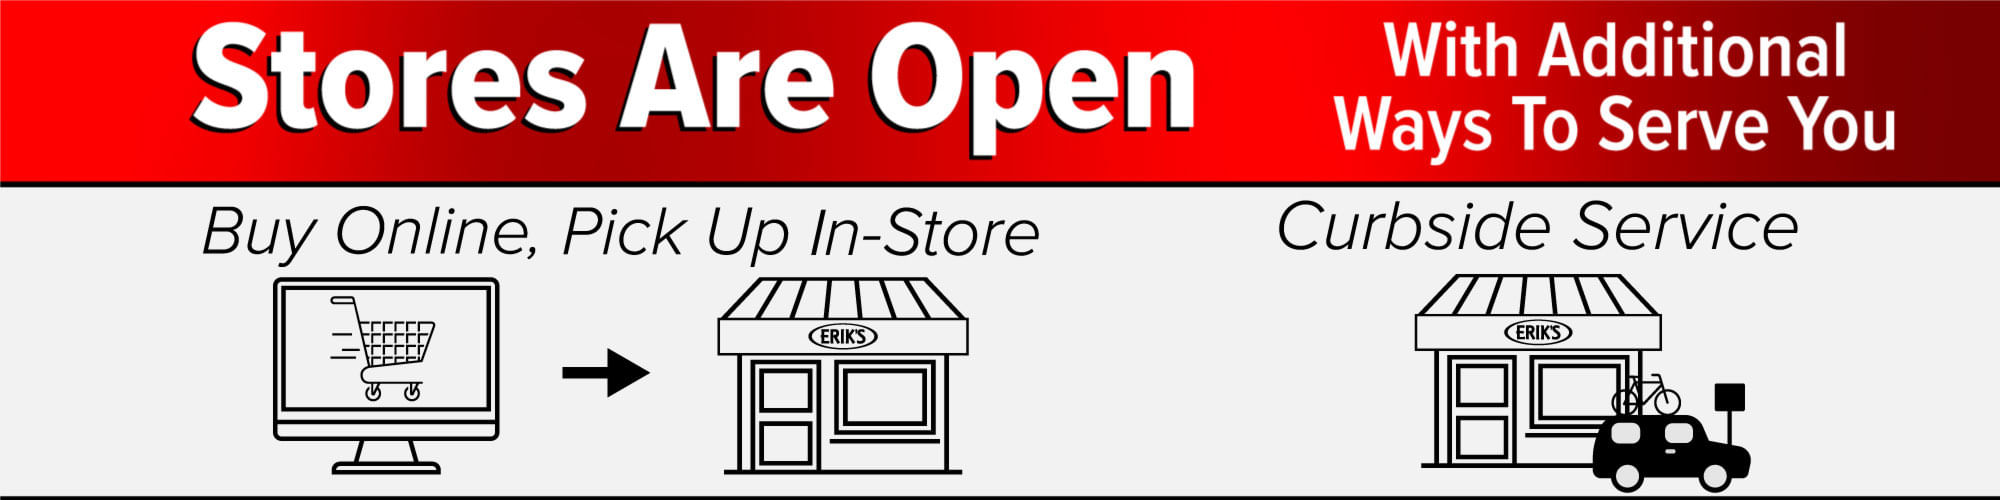 Stores Are Open with Convenient Shopping Options